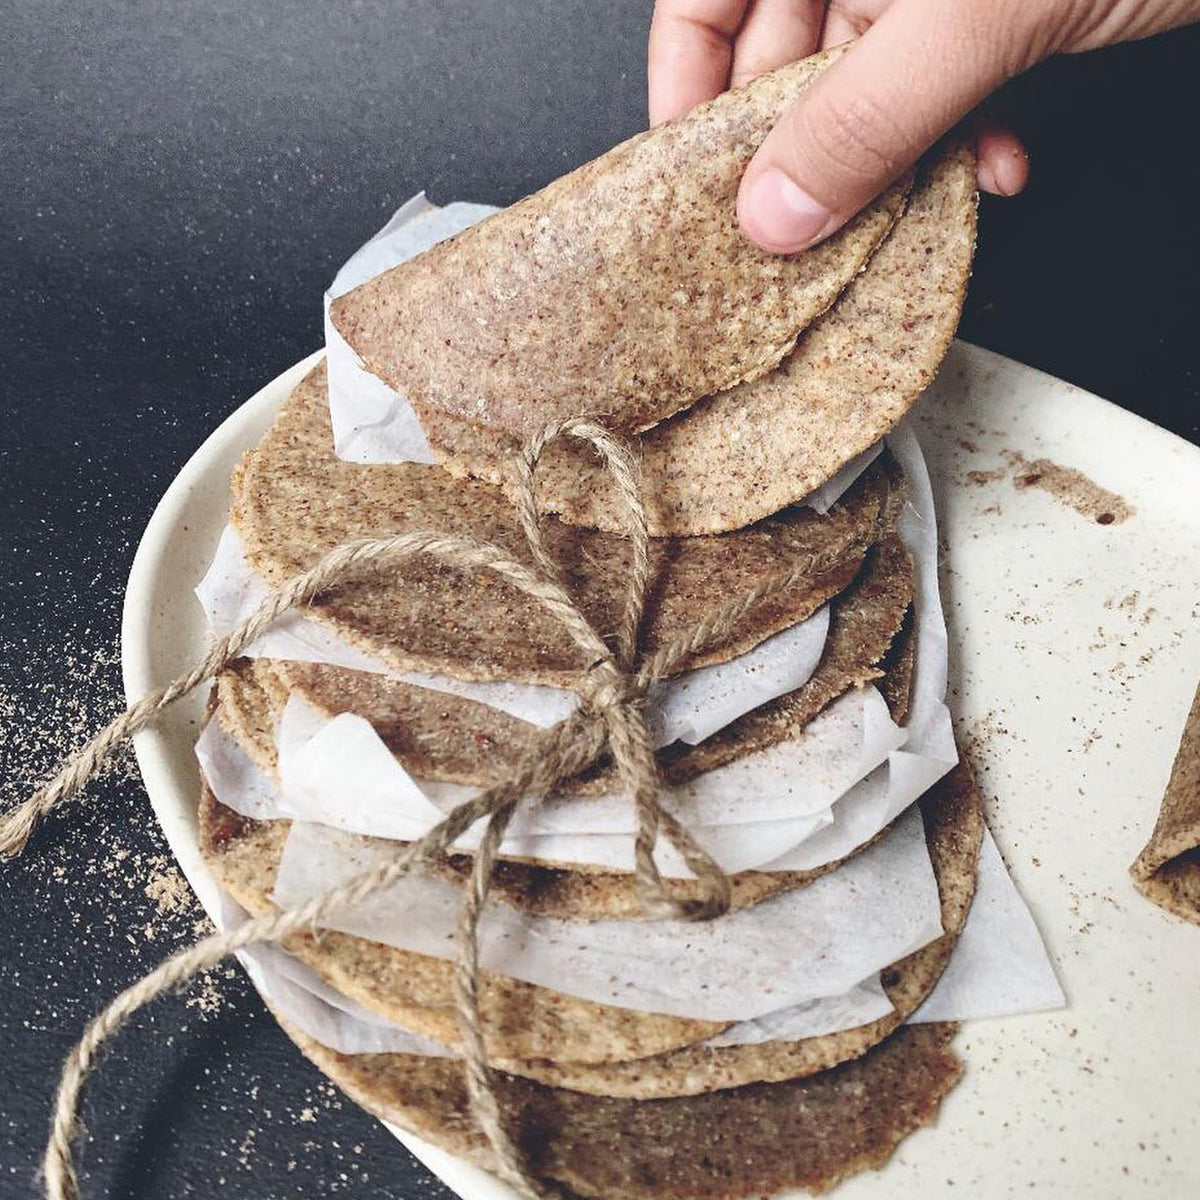 Keto Tortilla Wraps(10 Keto Tortilla Wraps)